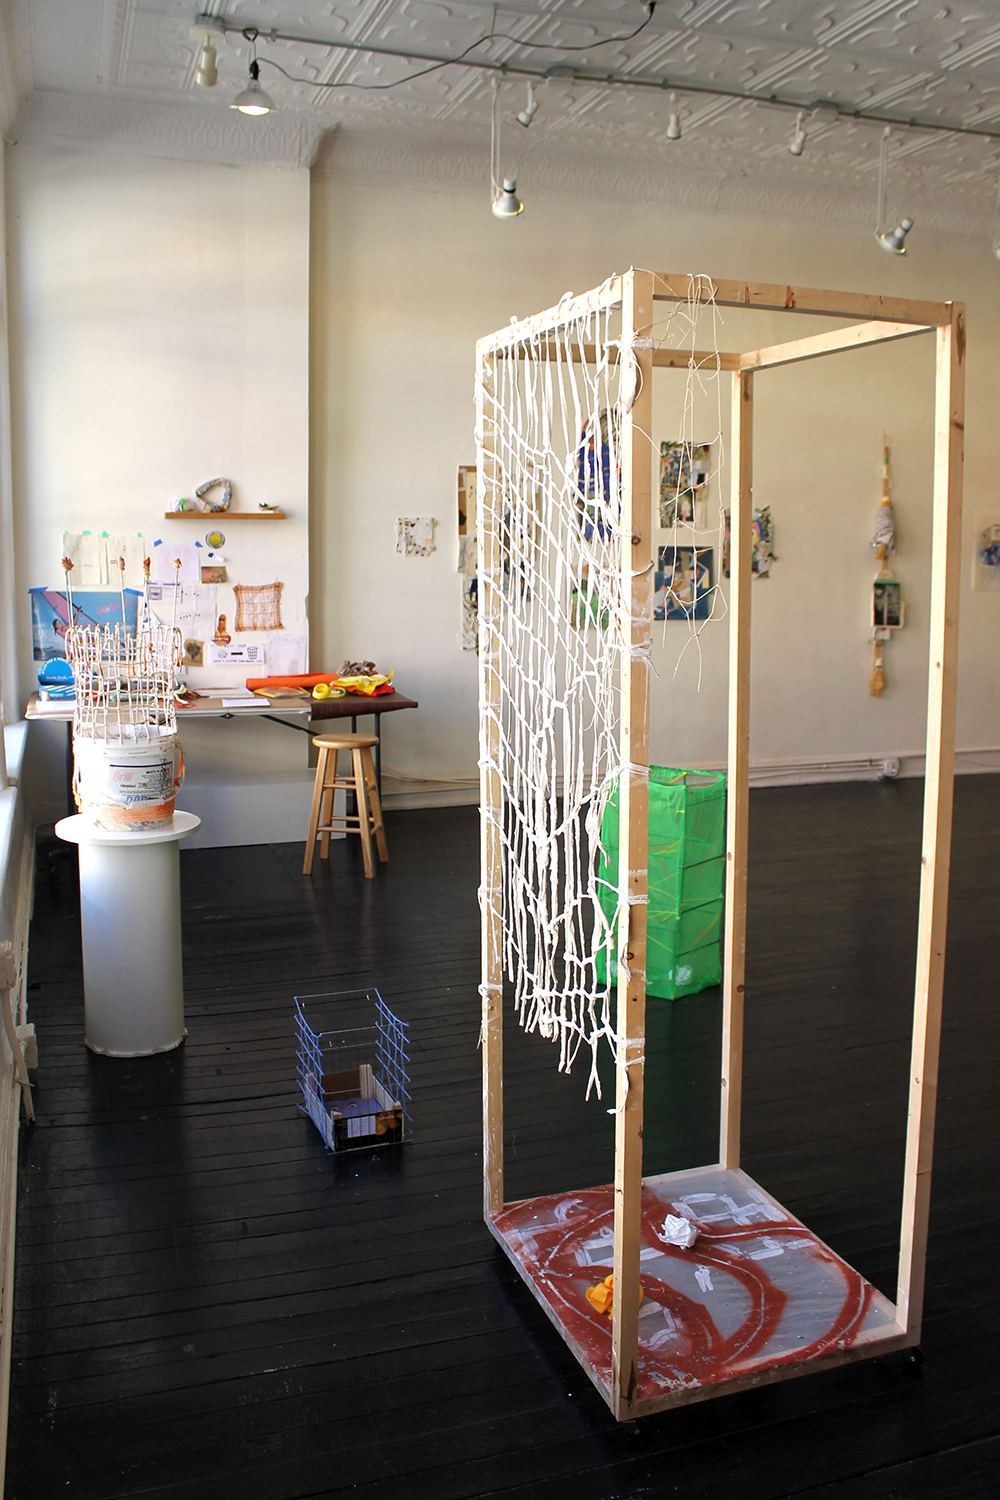 Best Shot , Harriet Hoover & Amy S. Hoppe, 2015, interactive installation  Throughout the exhibition, visitors were invited to create a sculpture using Hoover & Hoppe's studio materials and aim for the sculptural goals provided.